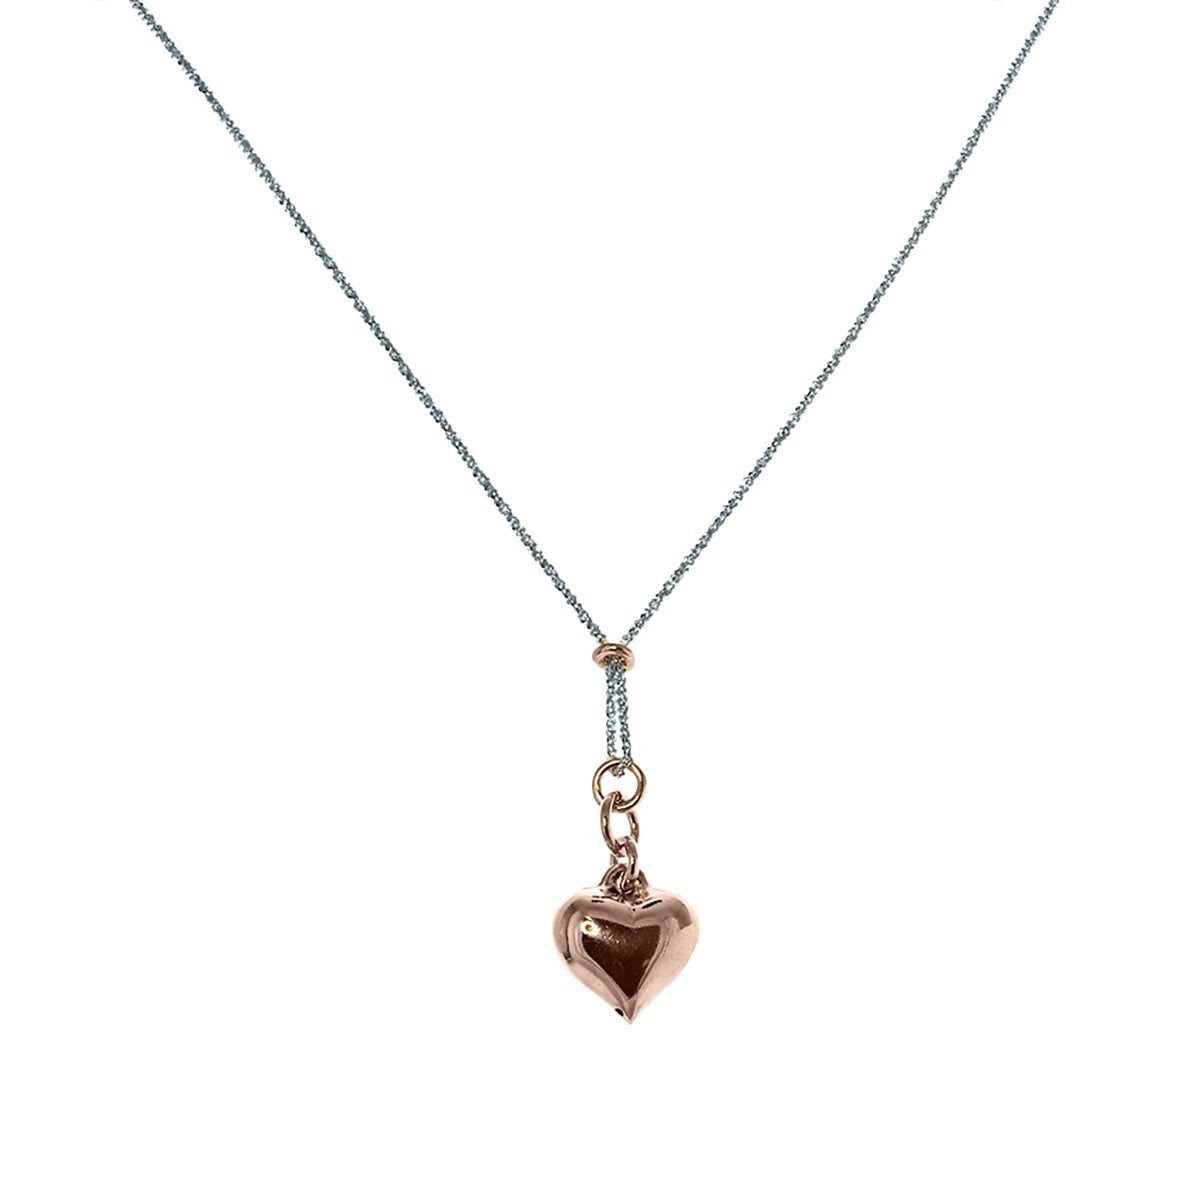 Roma Private Collection Necklaces Default Title / Silver Private Collection Heart Necklace 1150211